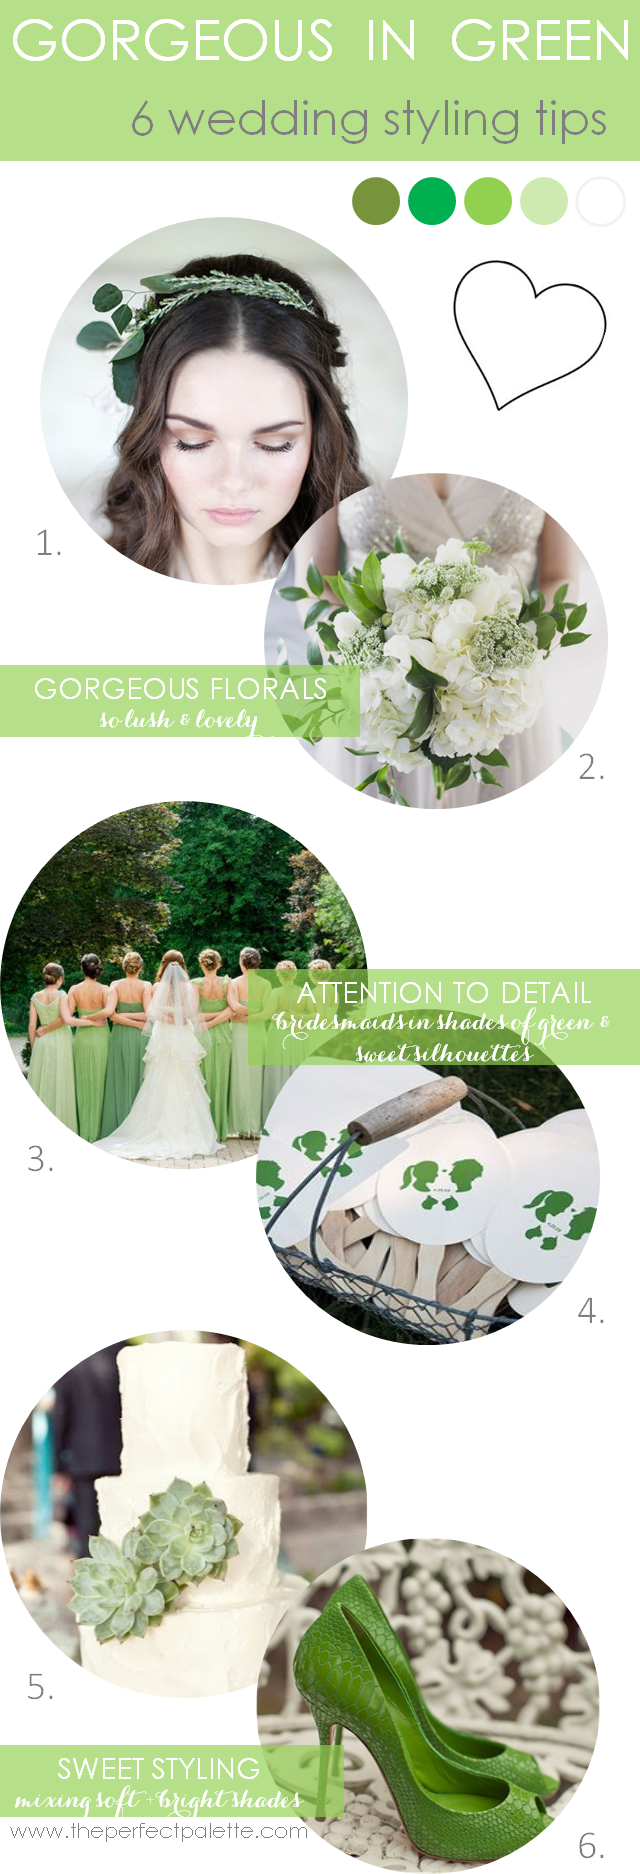 greenweddingideas.png~original